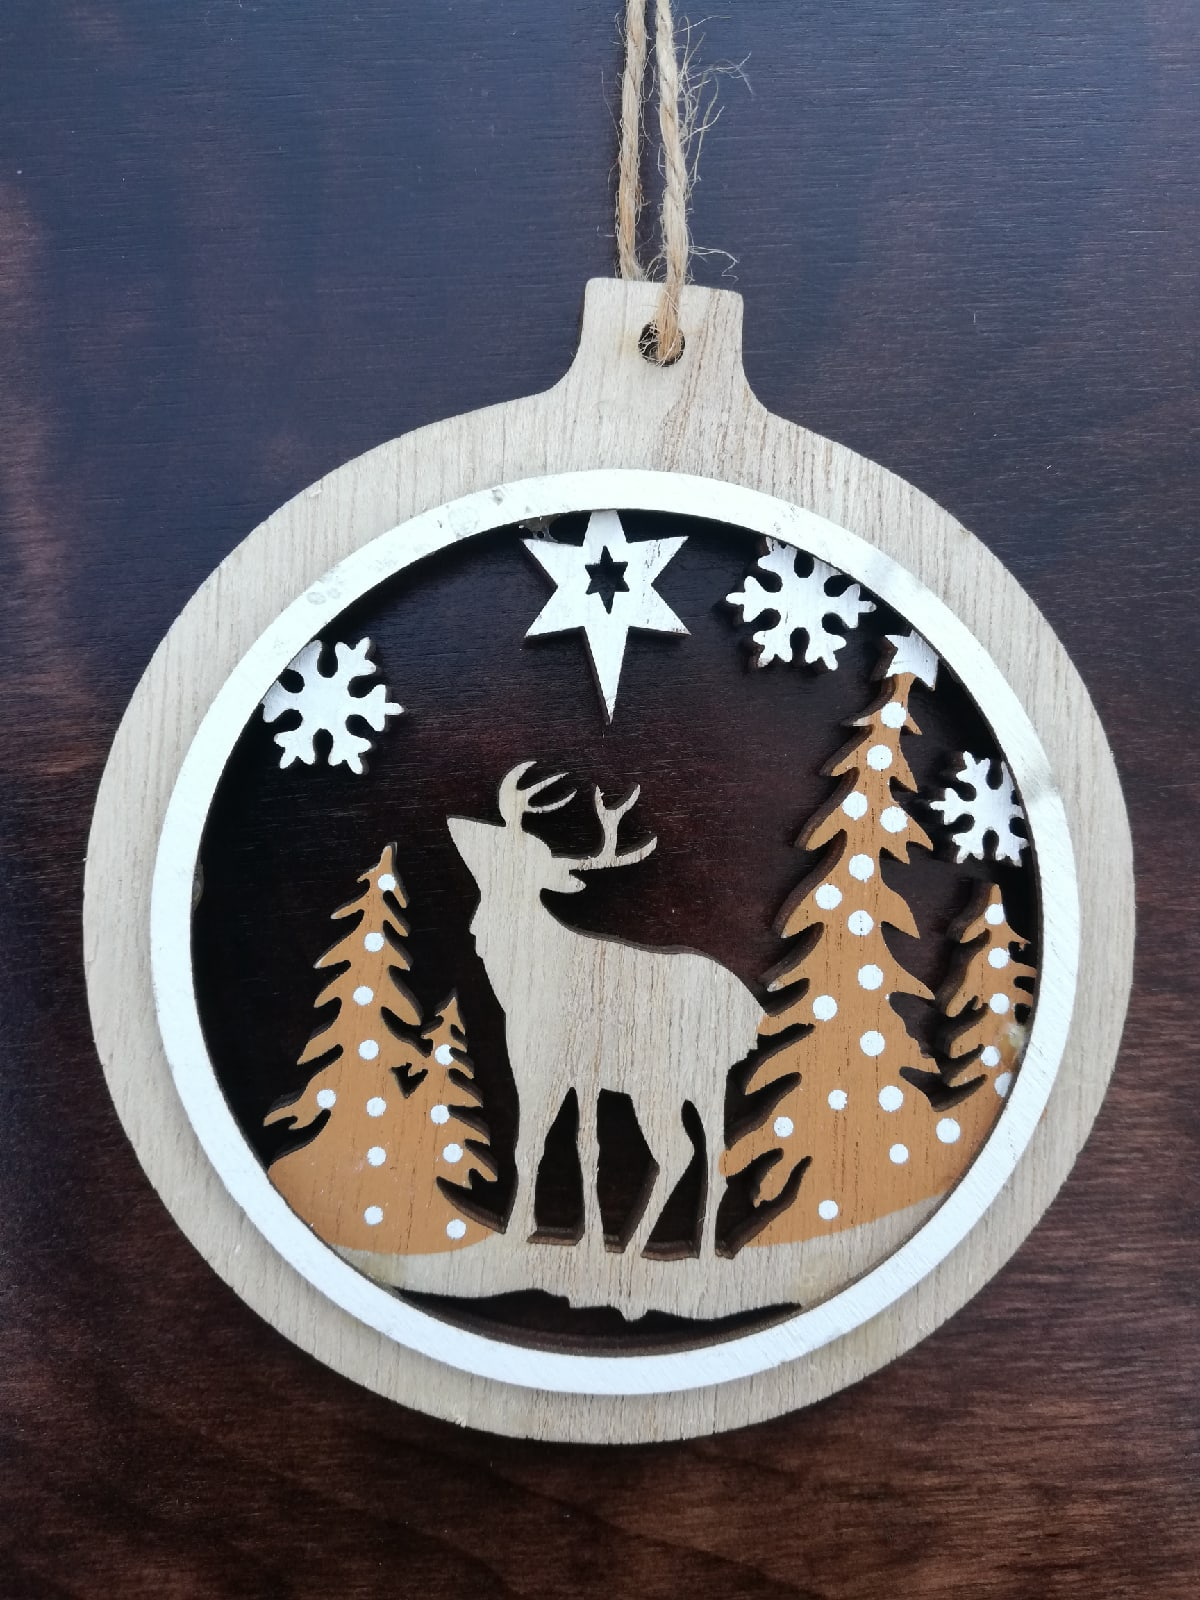 Laser Cut Christmas Themed Pendant Christmas Ball Ornament Free Vector Cdr Download 3axis Co